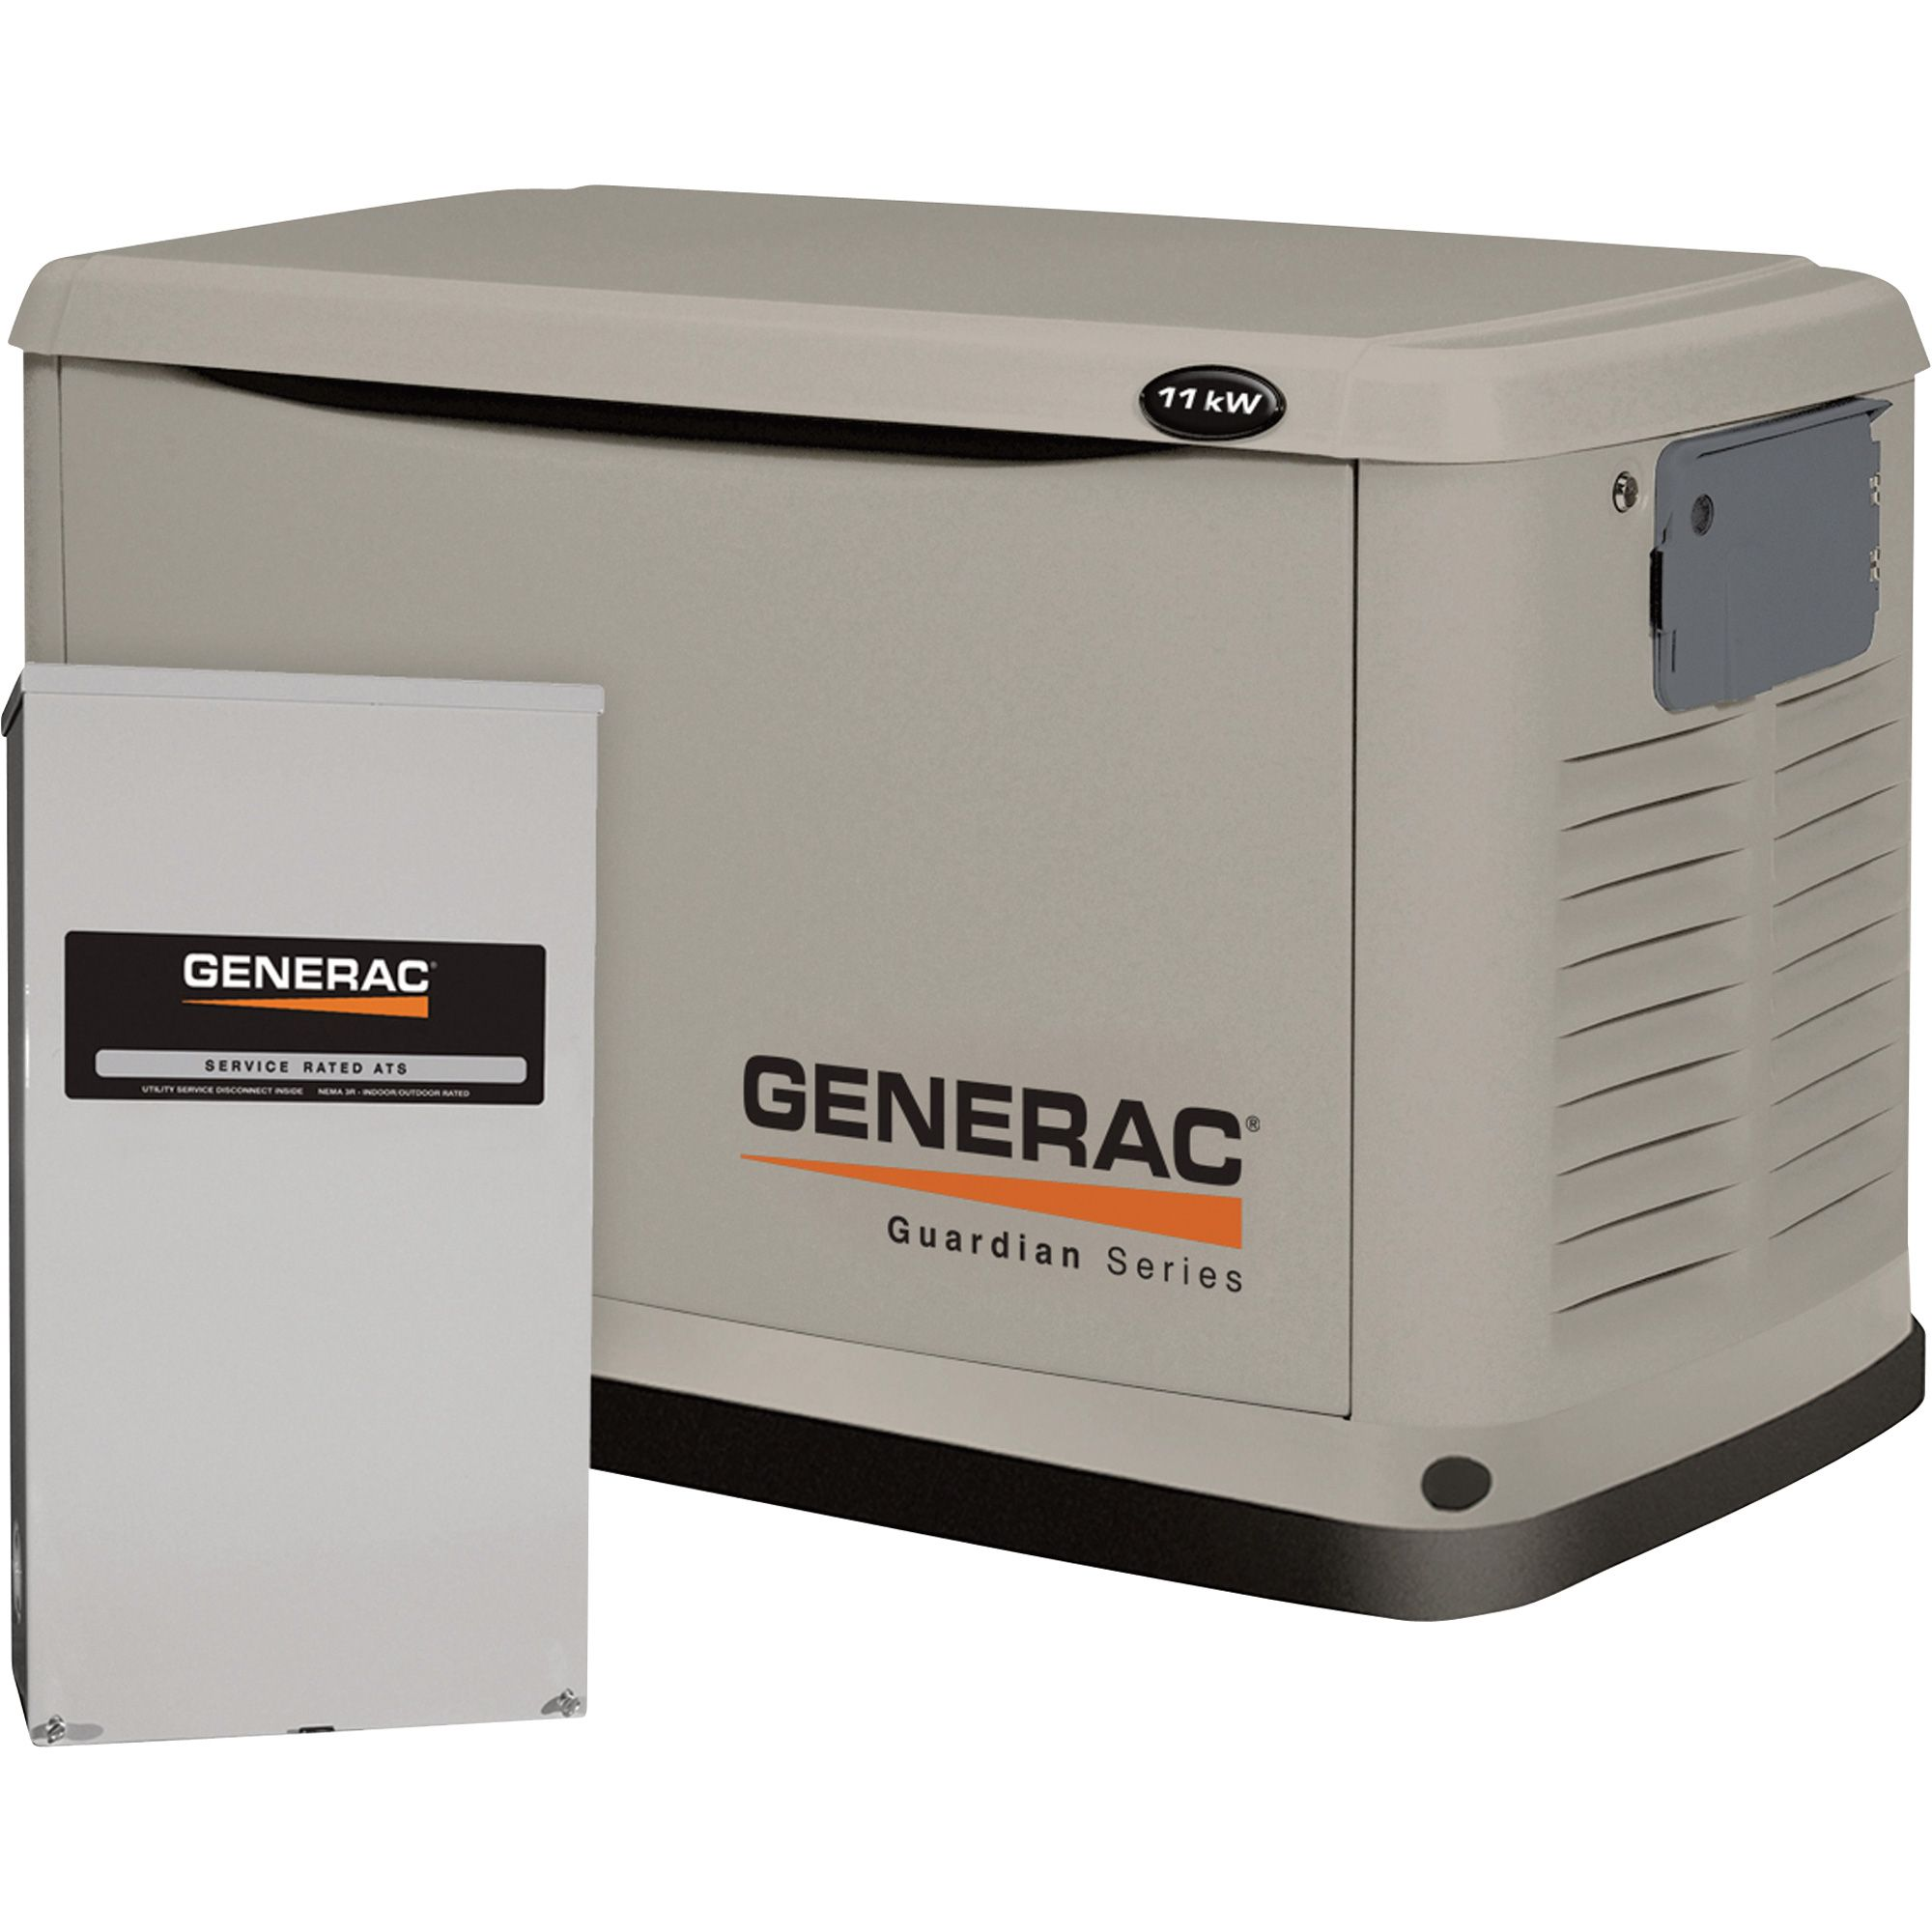 small resolution of free shipping generac guardian air cooled standby generator 11kw lp 10kw ng 200 amp service rated smart switch model 6438 residential standby